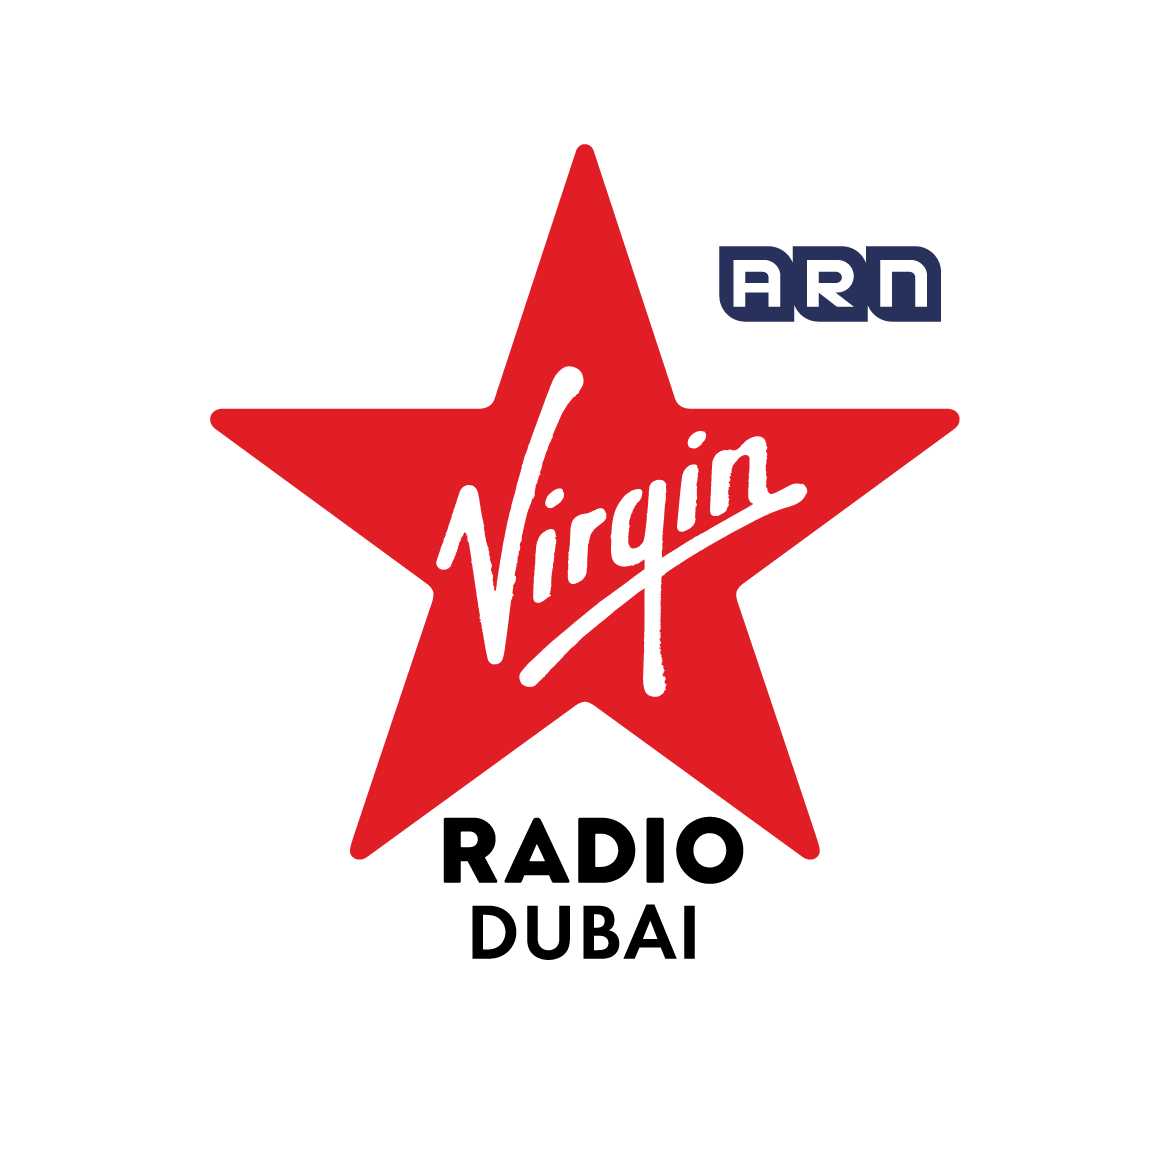 Virgin Radio Dubai - The UAE's #1 Hit Music Station on 104 4 FM